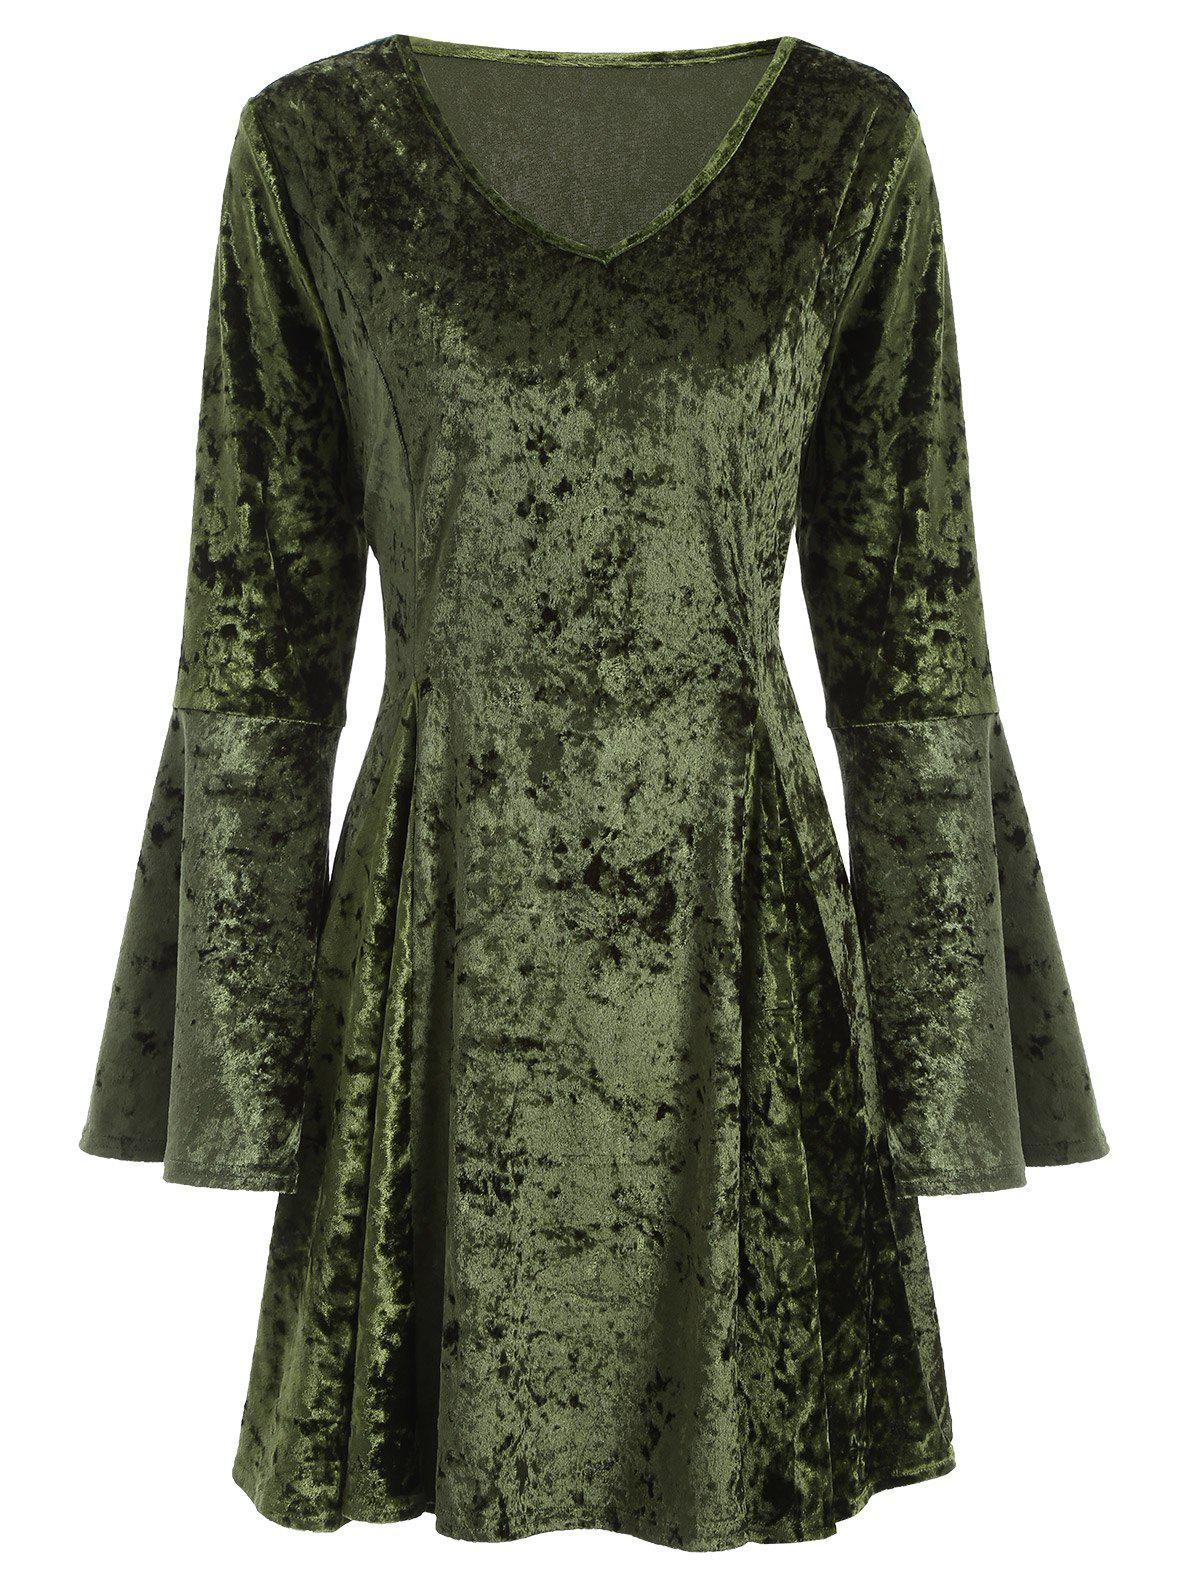 V Neck Bell Sleeve Fit Flare Velvet Dress - Green M